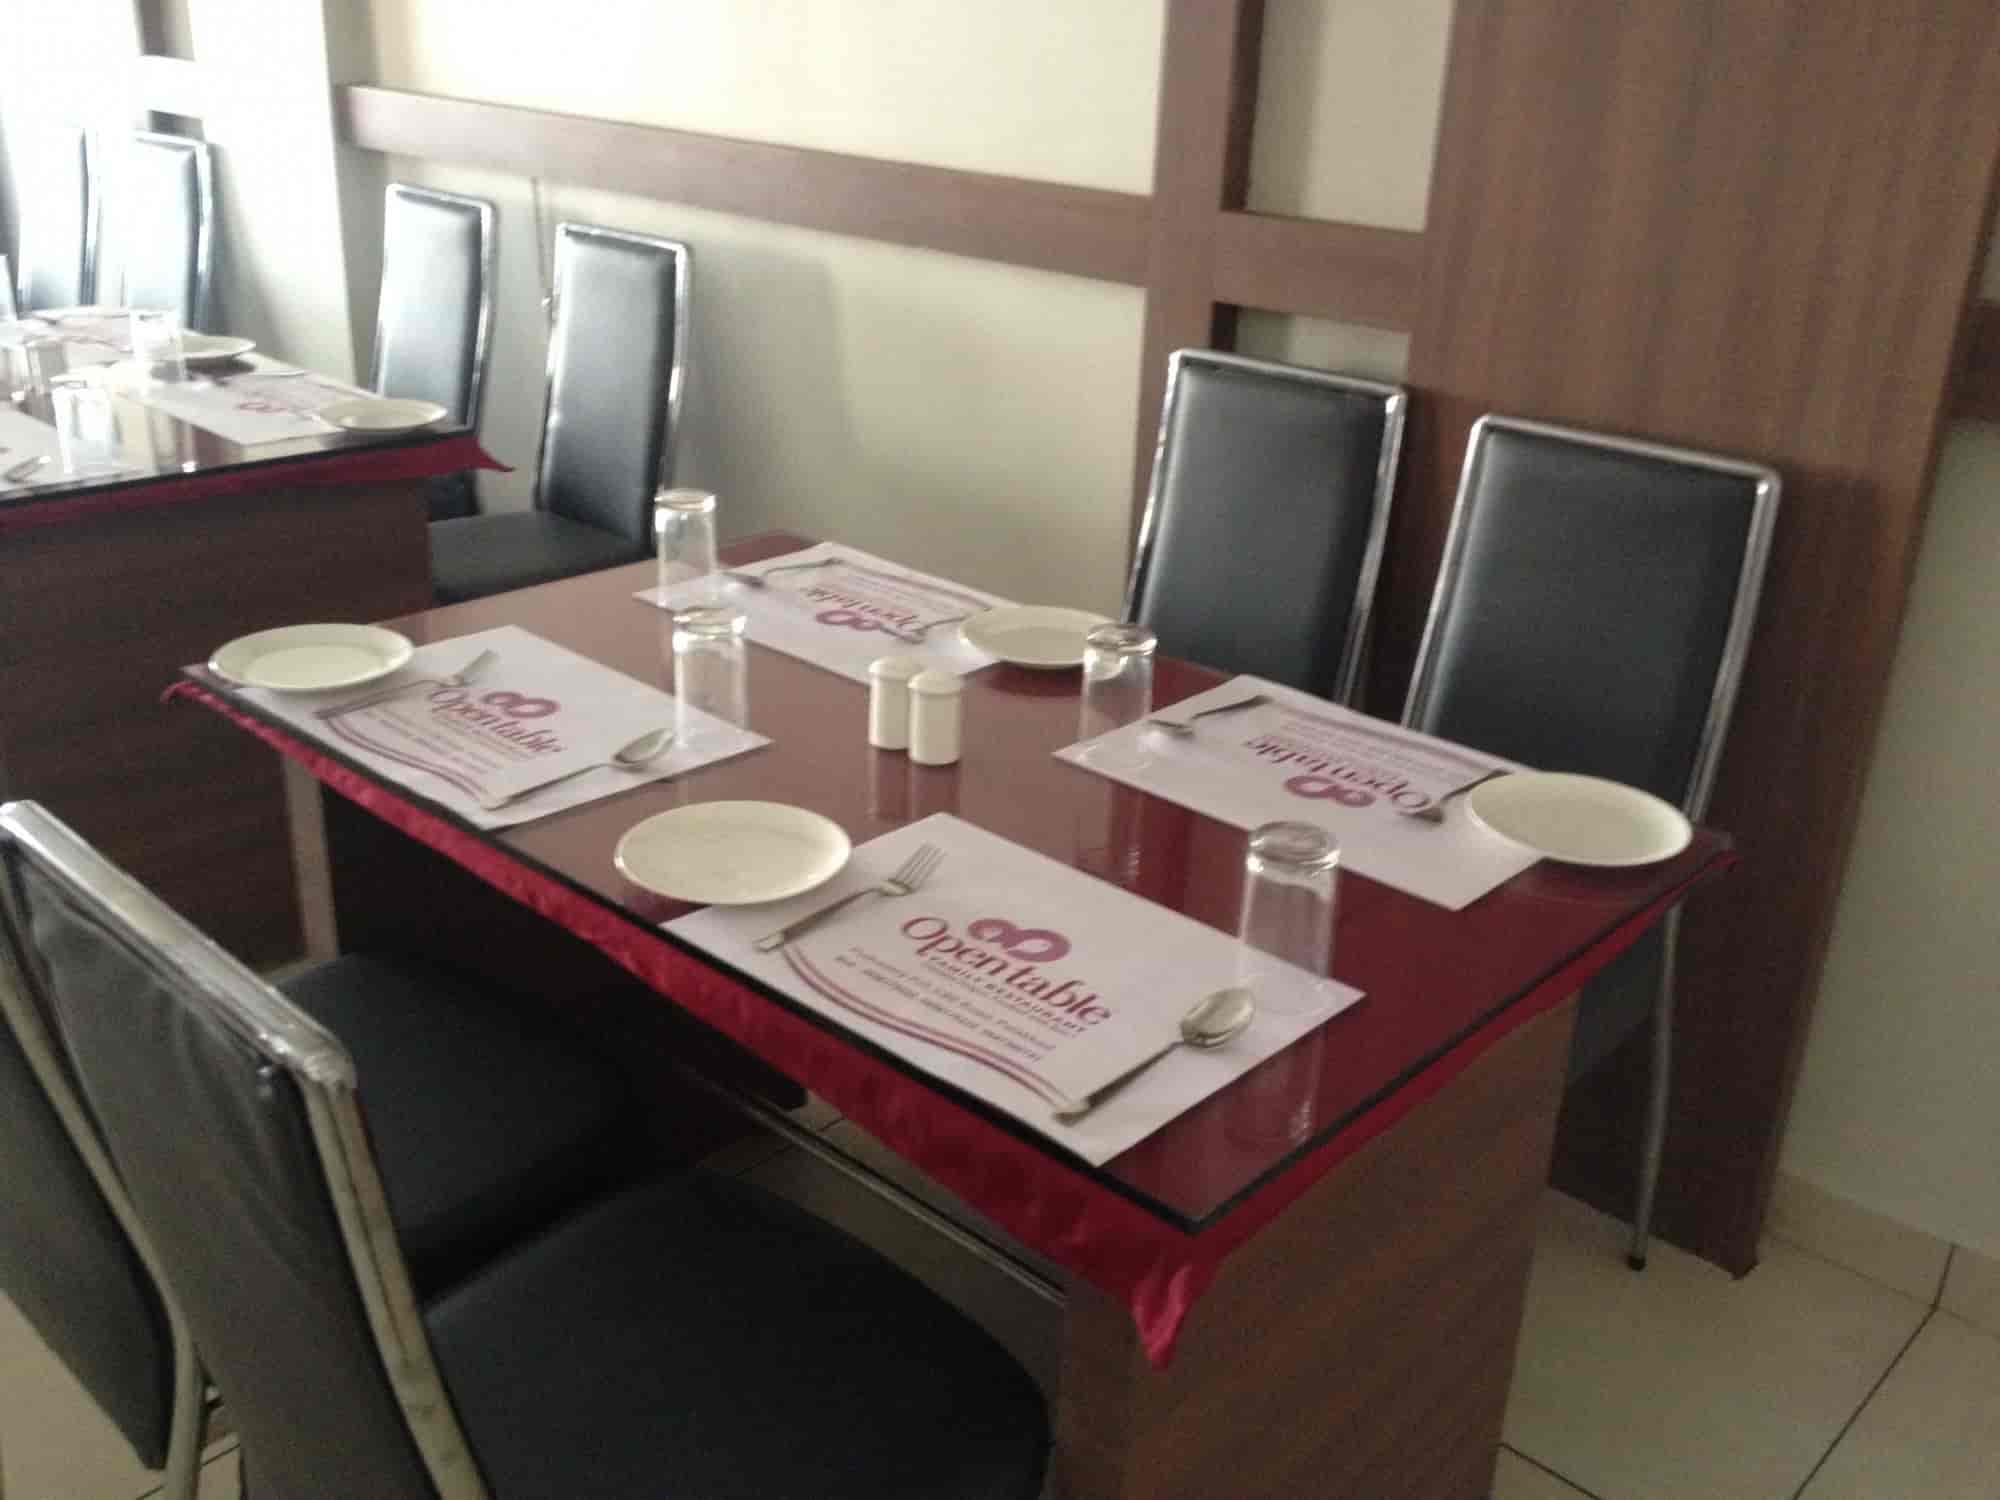 Open Table Restaurant Photos Pudussery Palakkad Pictures Images - Oen table